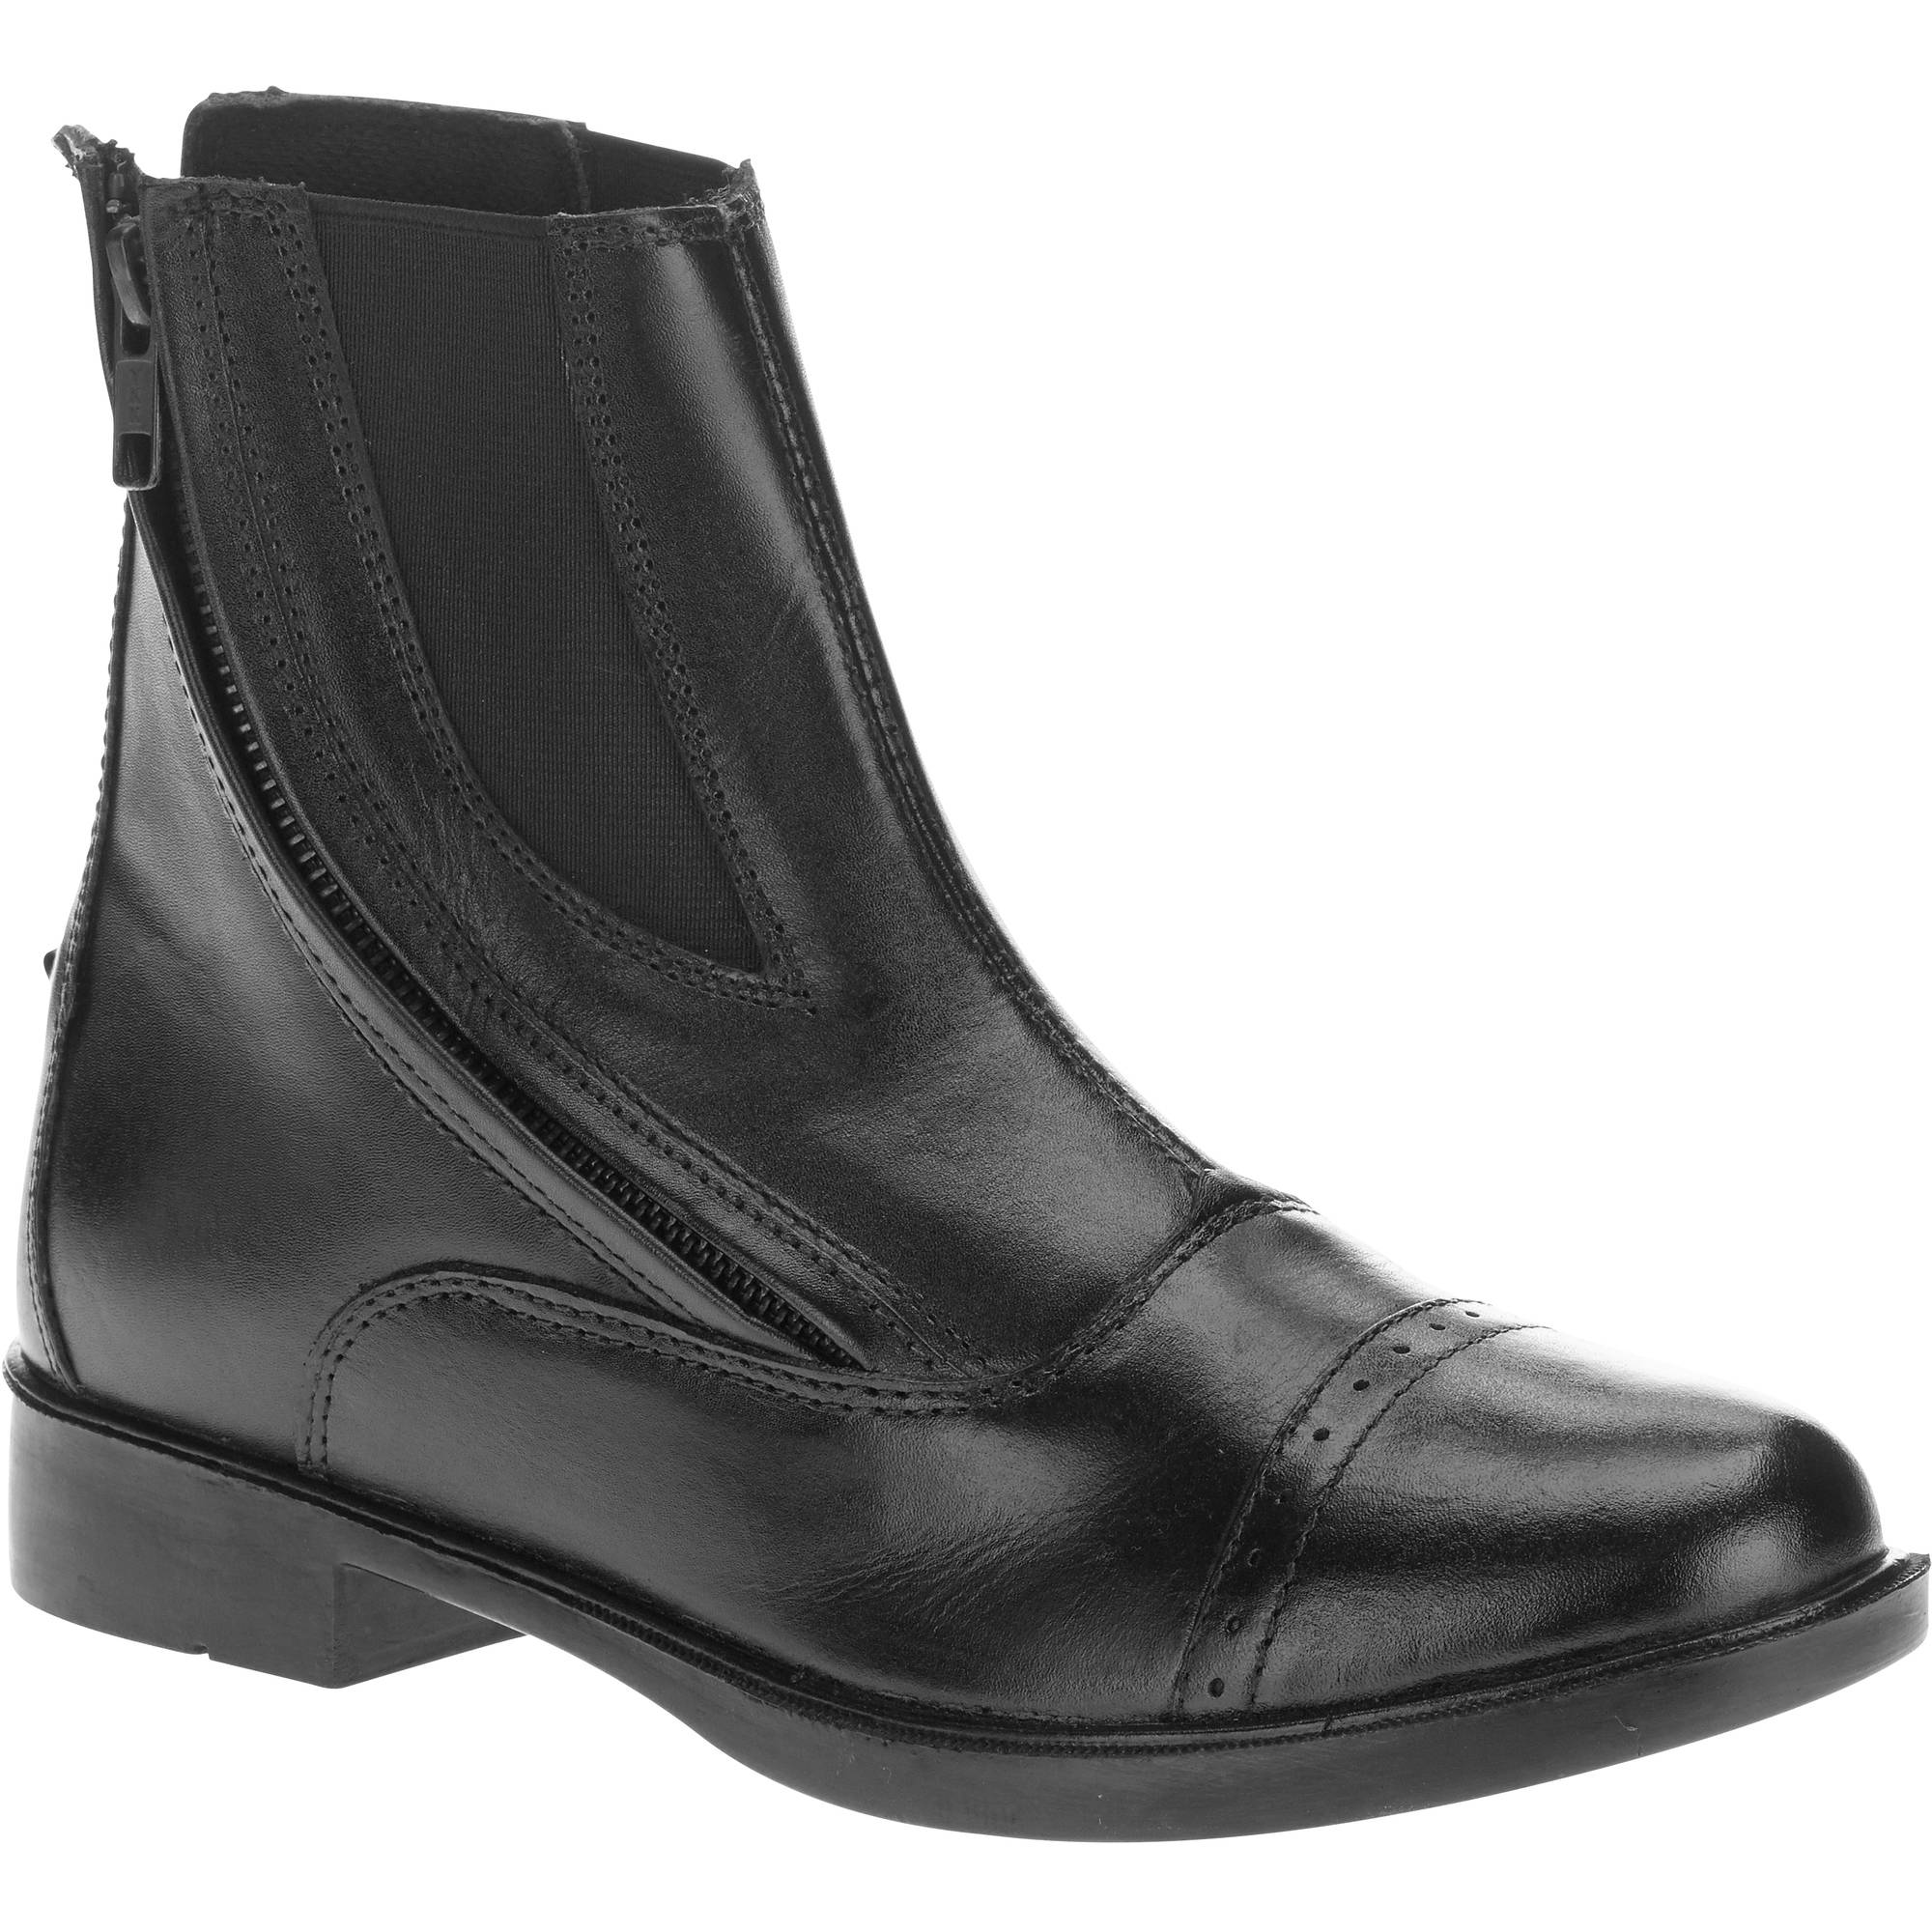 Daisy Clipper, by Huntley Equestrian, Chidlren's Black Side Zipper Leather Paddock Boots by